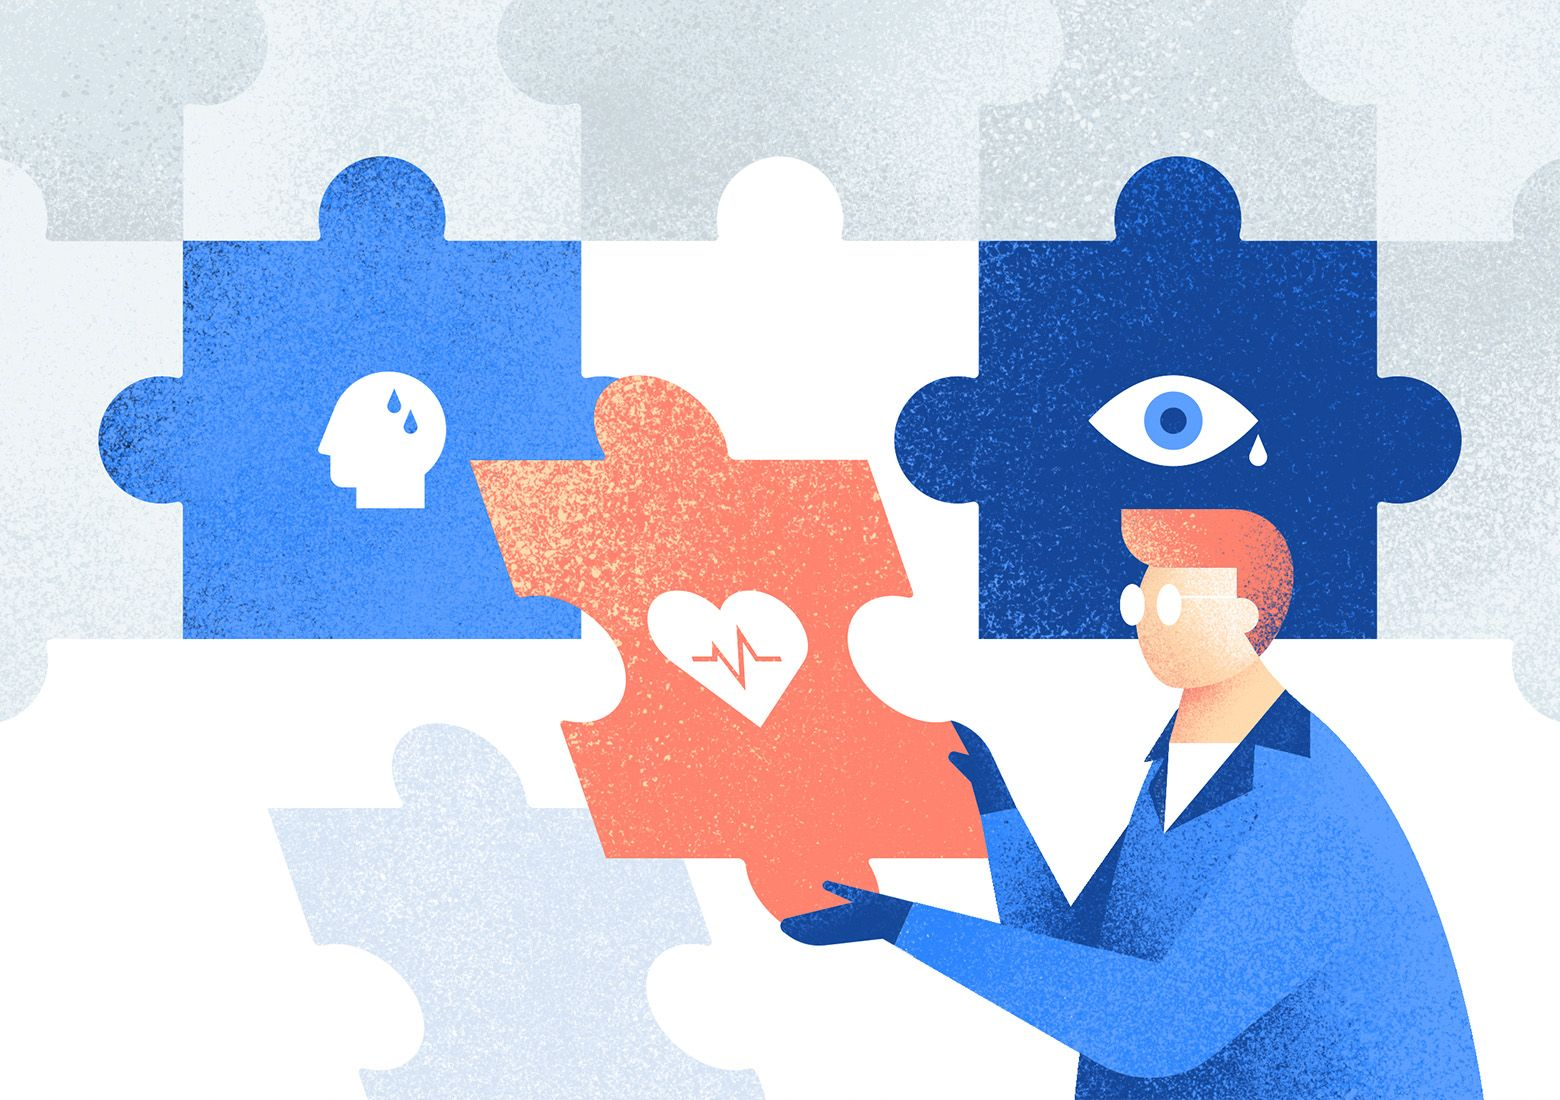 Initial symptoms are like puzzles to the whole diagnosis picture. Illustration by Aga Więckowska.